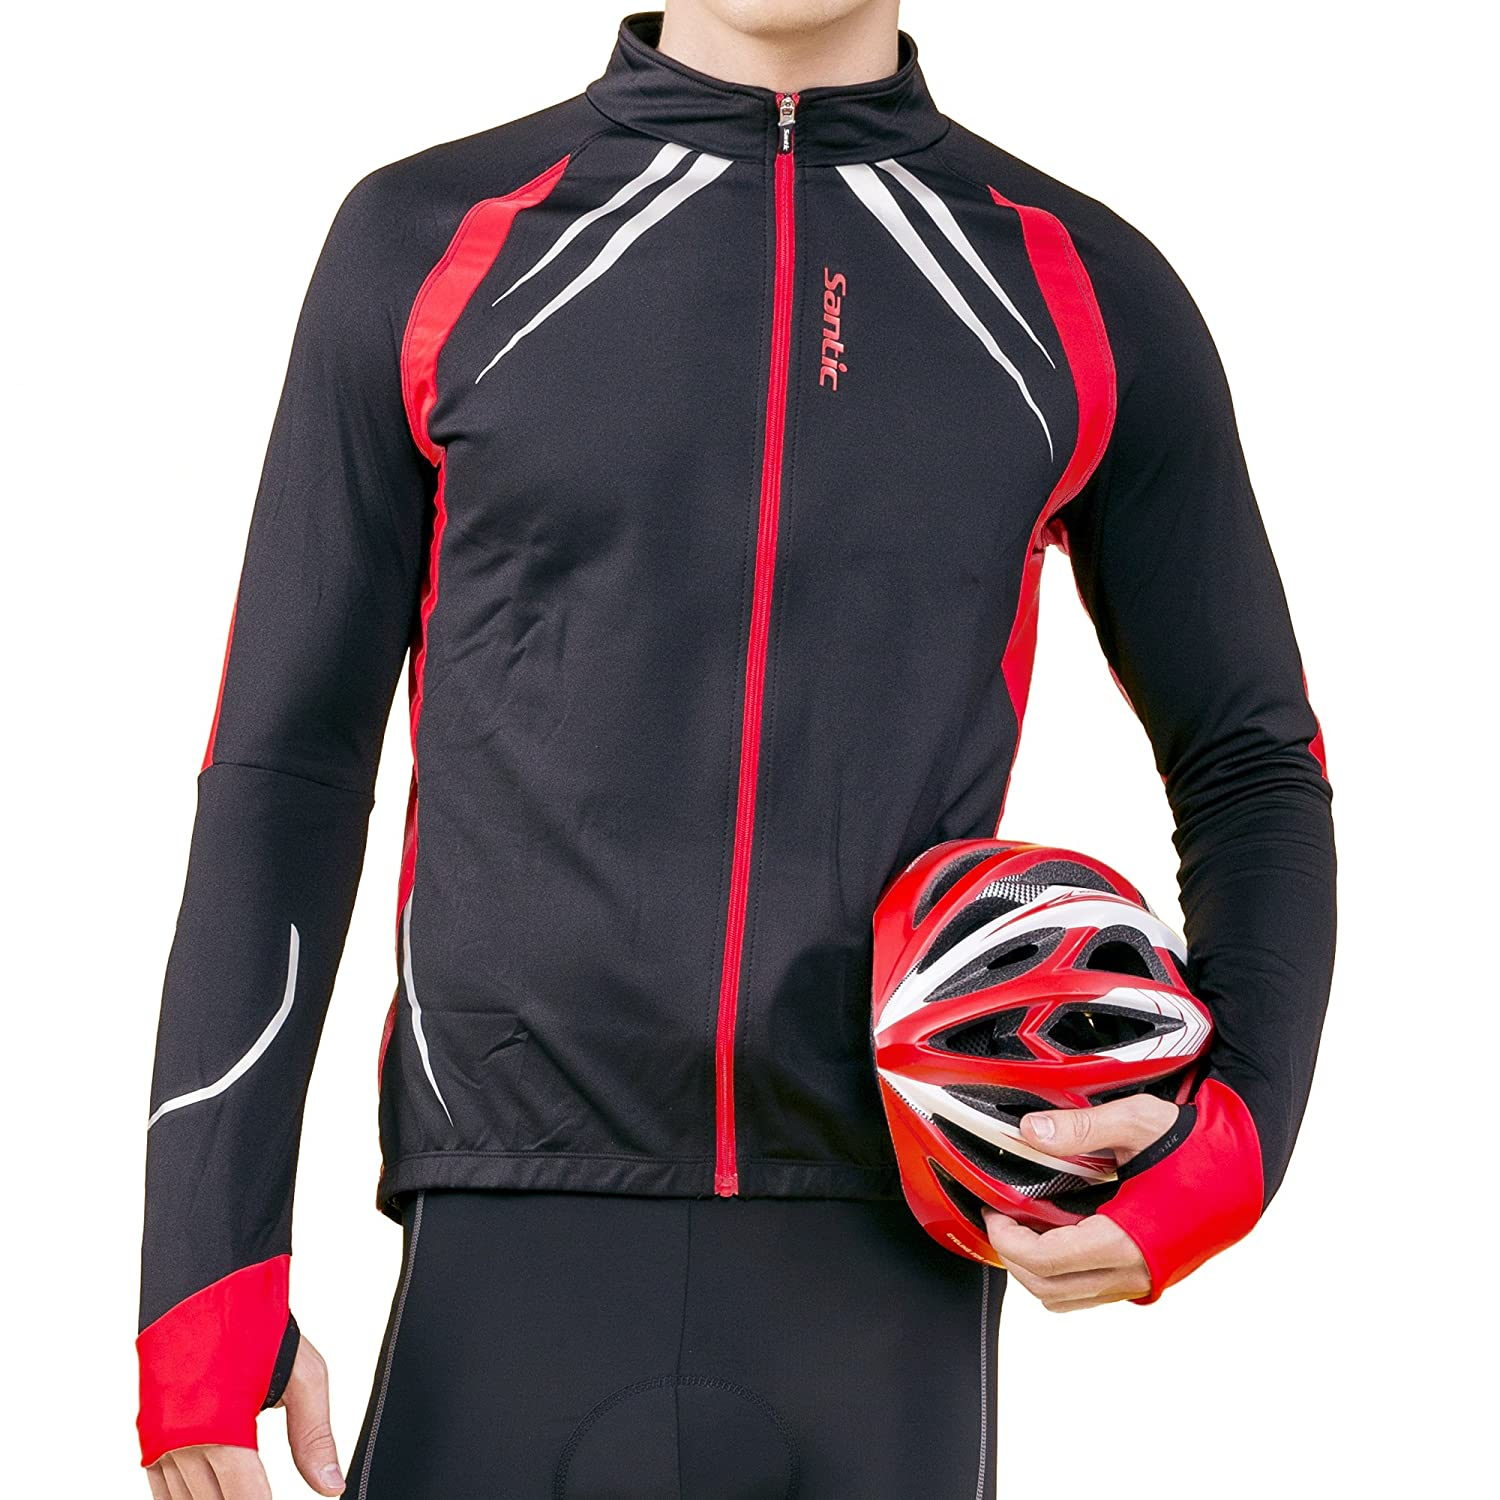 Amazon.com : SANTIC Cycling Fleece Thermal Long Jersey Winter ...